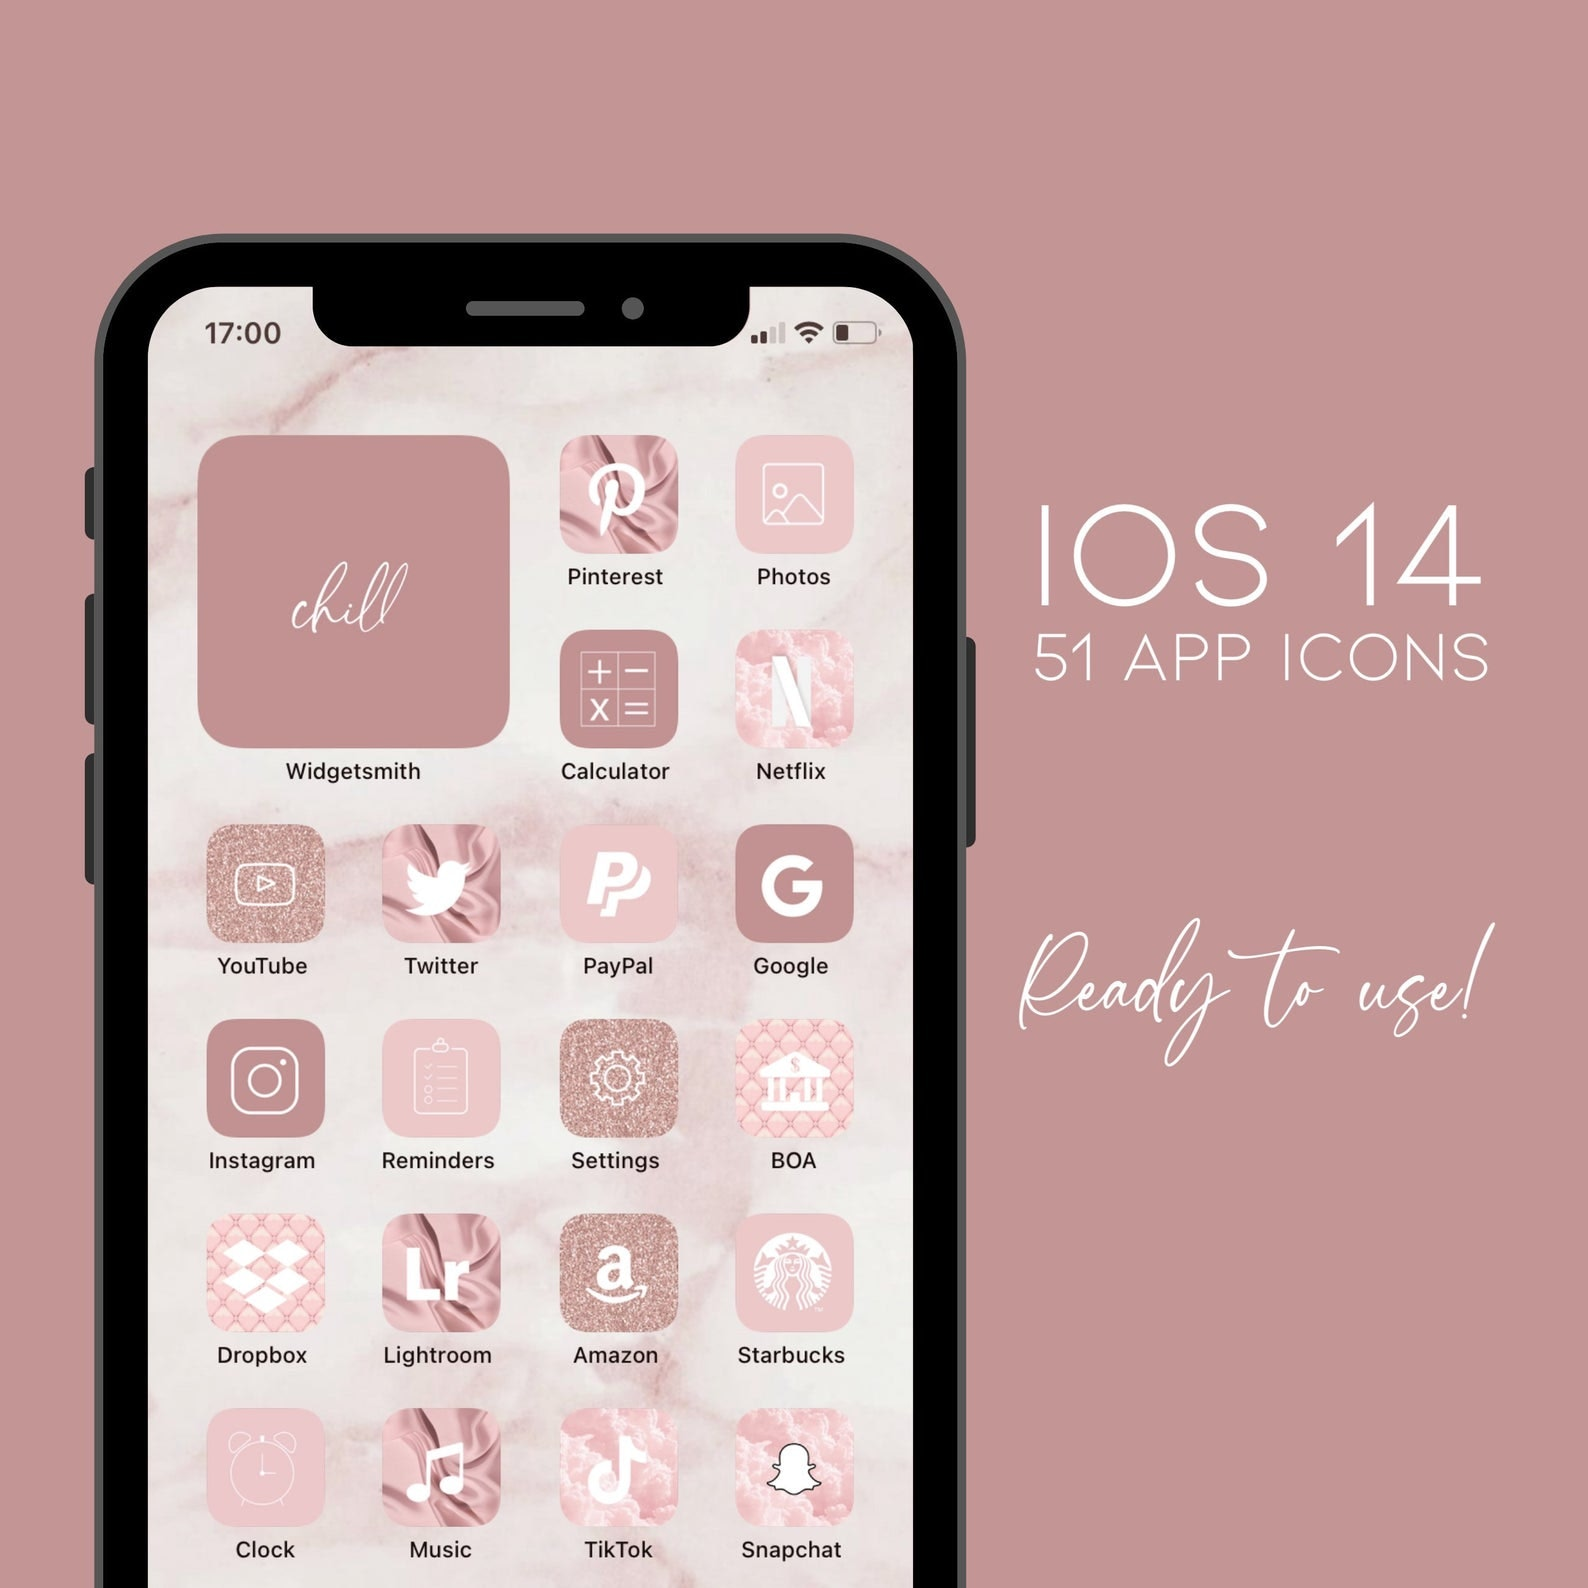 12 Best Ios 14 App Icon Packs On Etsy To Makeover Your Home Screen Hot Lifestyle News